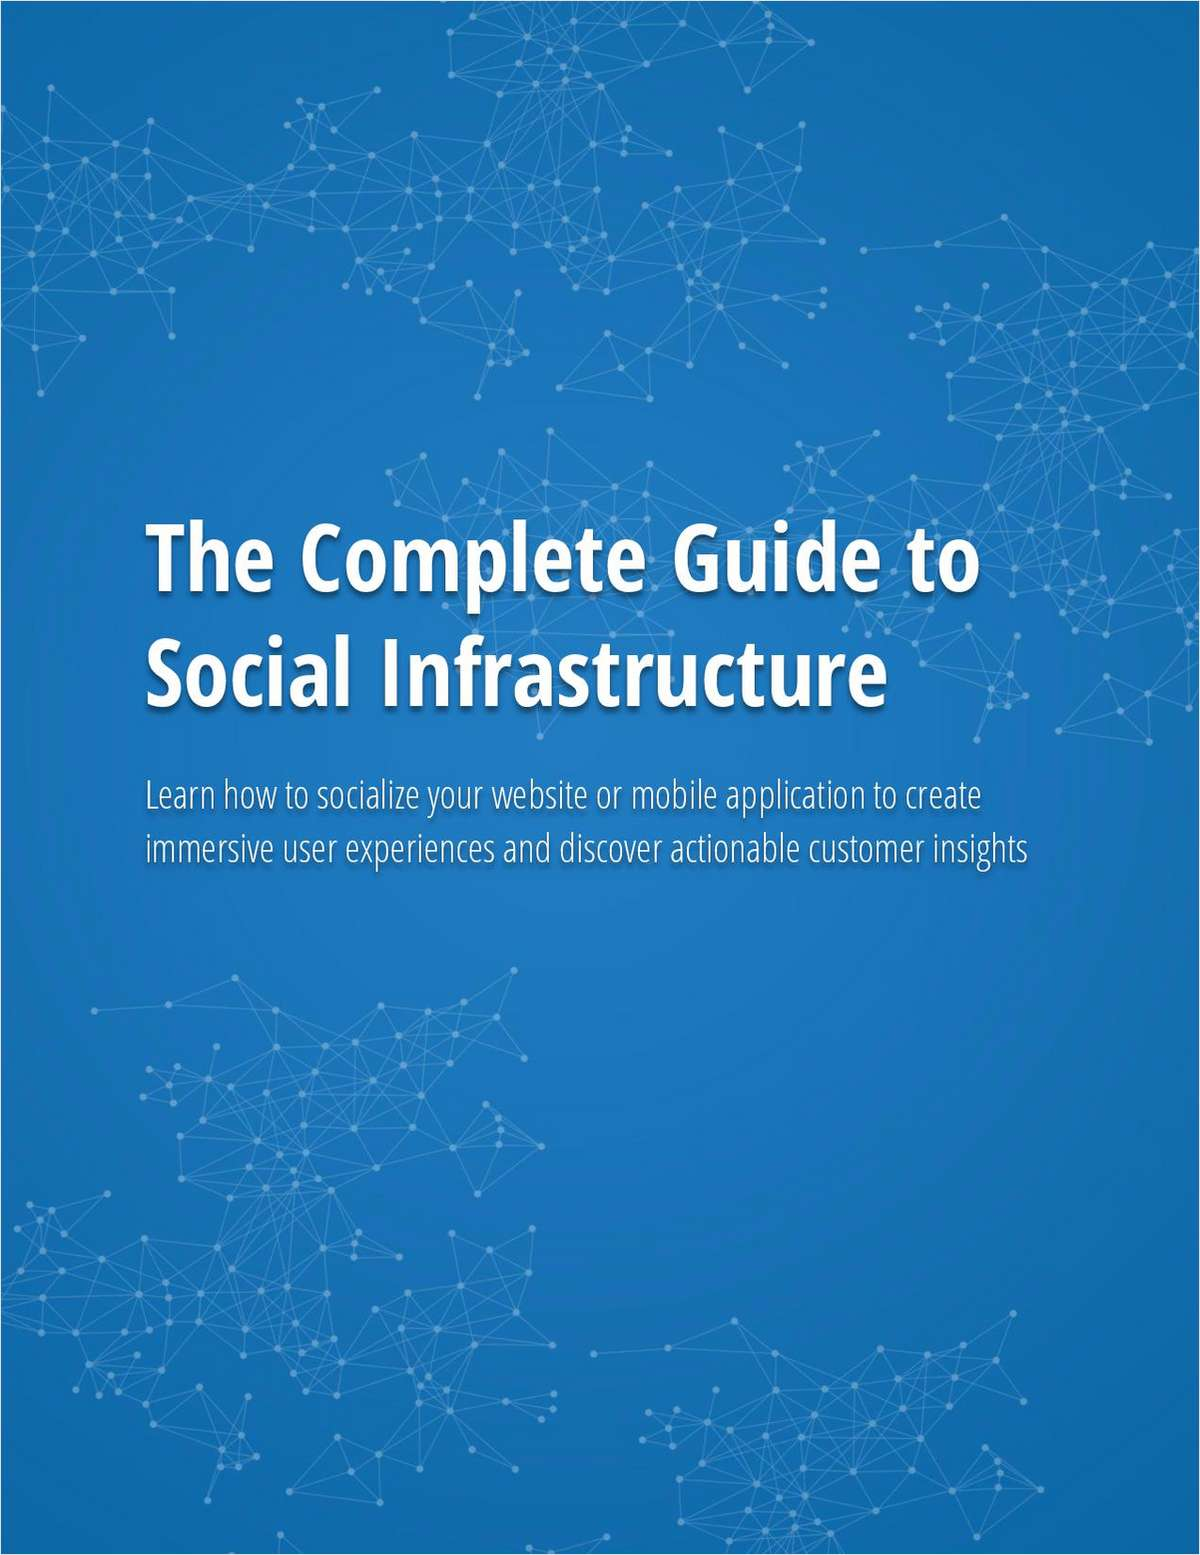 The Complete Guide to Social Infrastructure